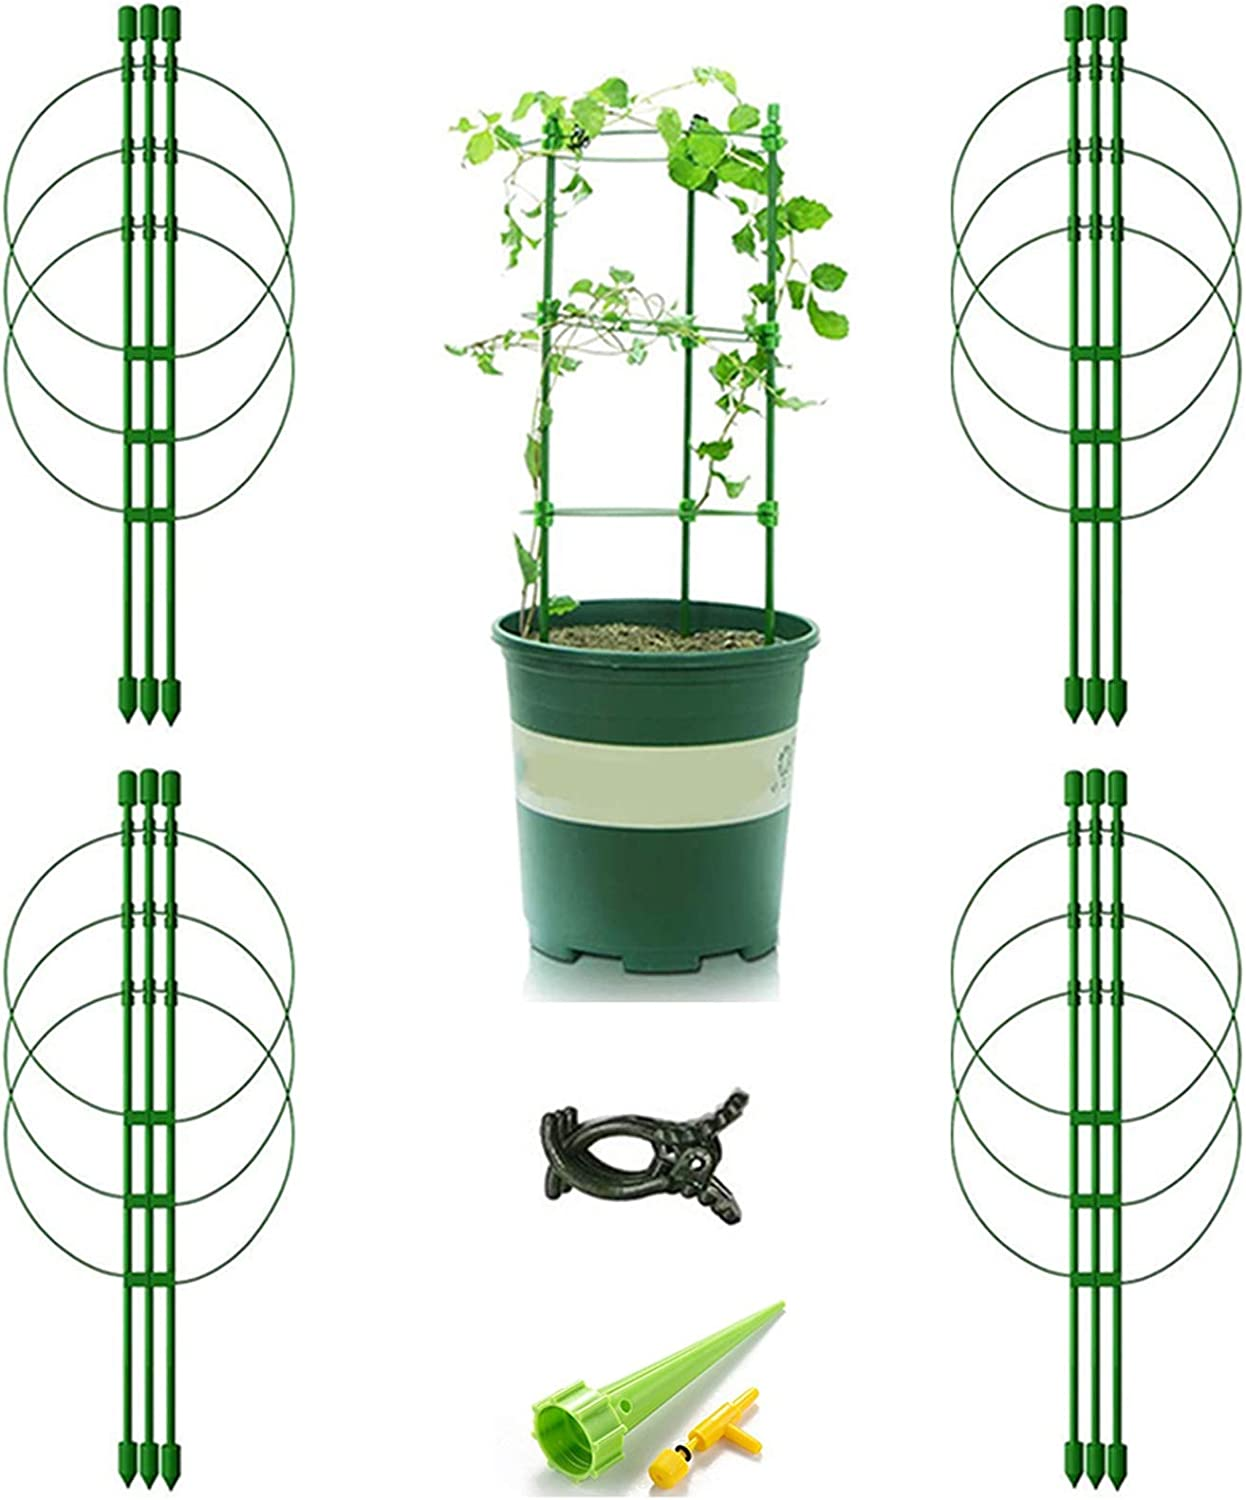 Vitog 4-Pack Tomato Cages for Garden 18 Inches Plant Support Trellis for Tomato Plants Climbing Plant Cage Stakes with 4 Self Watering Spikes and 20 Plant Clips(4 Packs)